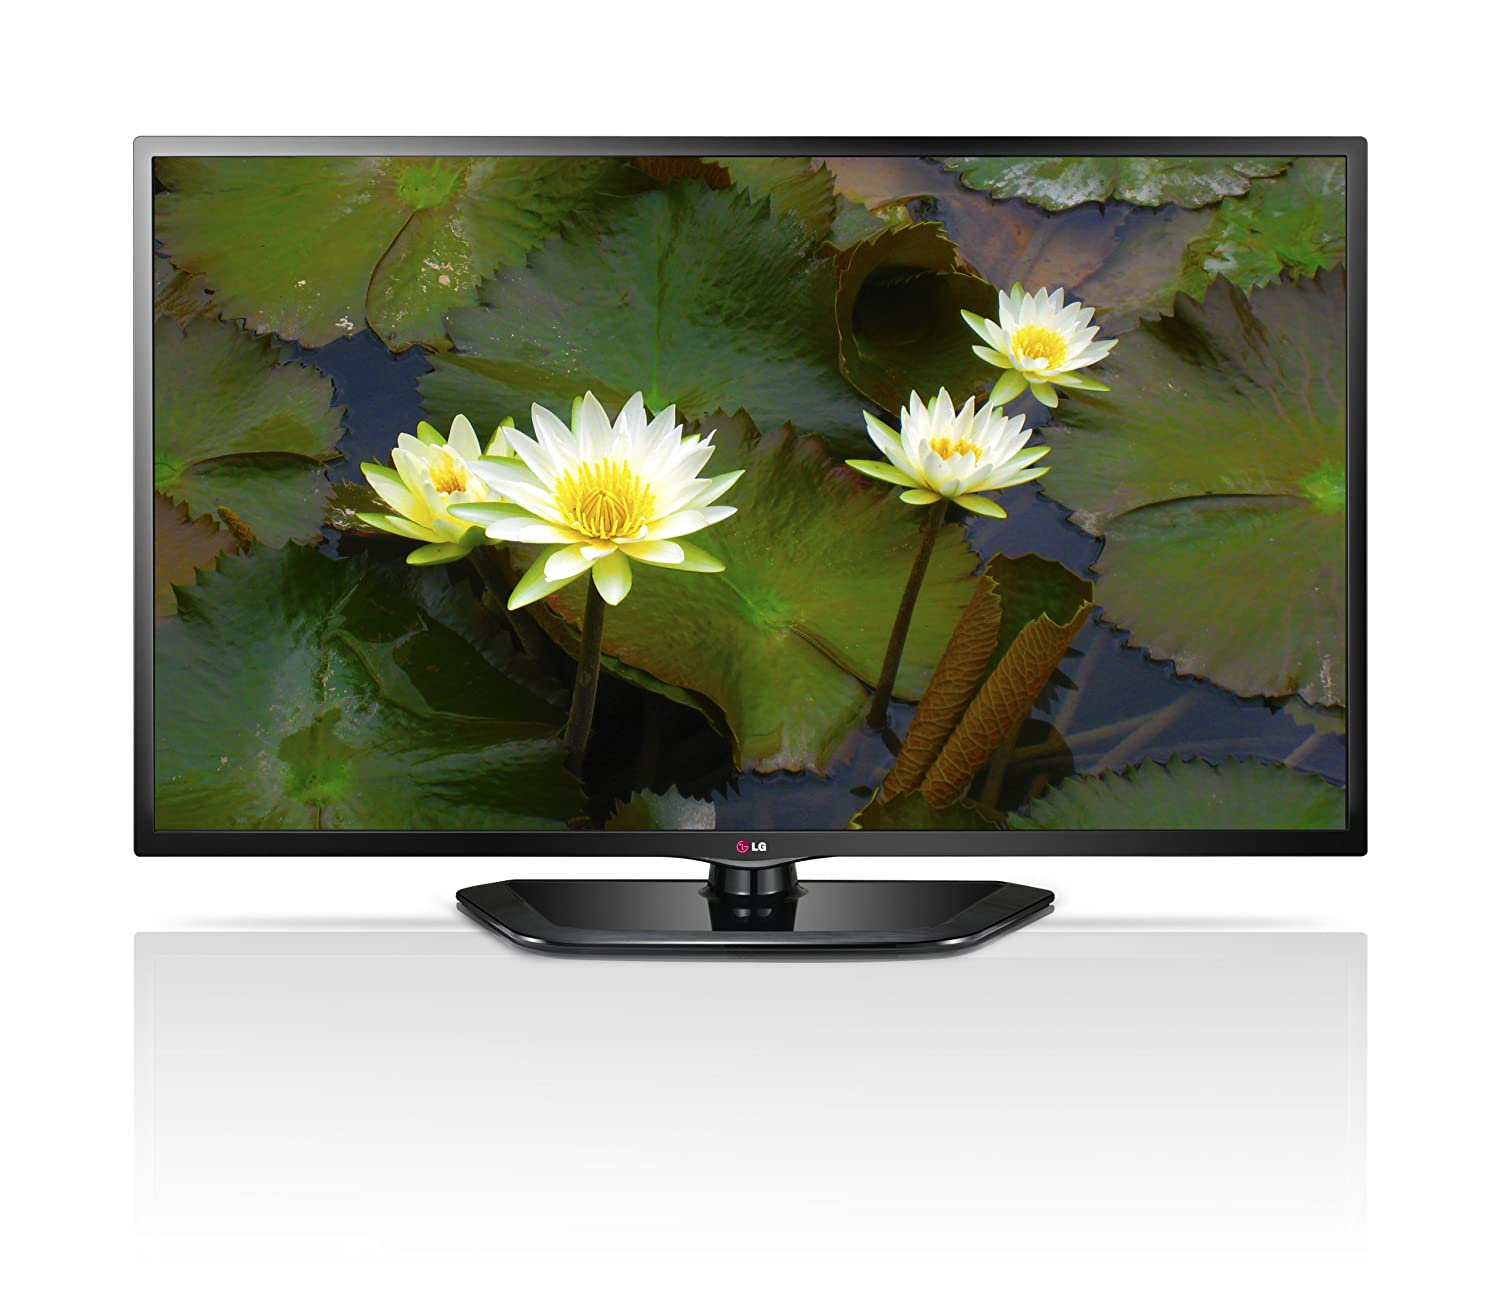 LG-Electronics-42LN5400-42-Inch-1080p-120Hz-LED-TV-2013-Model-